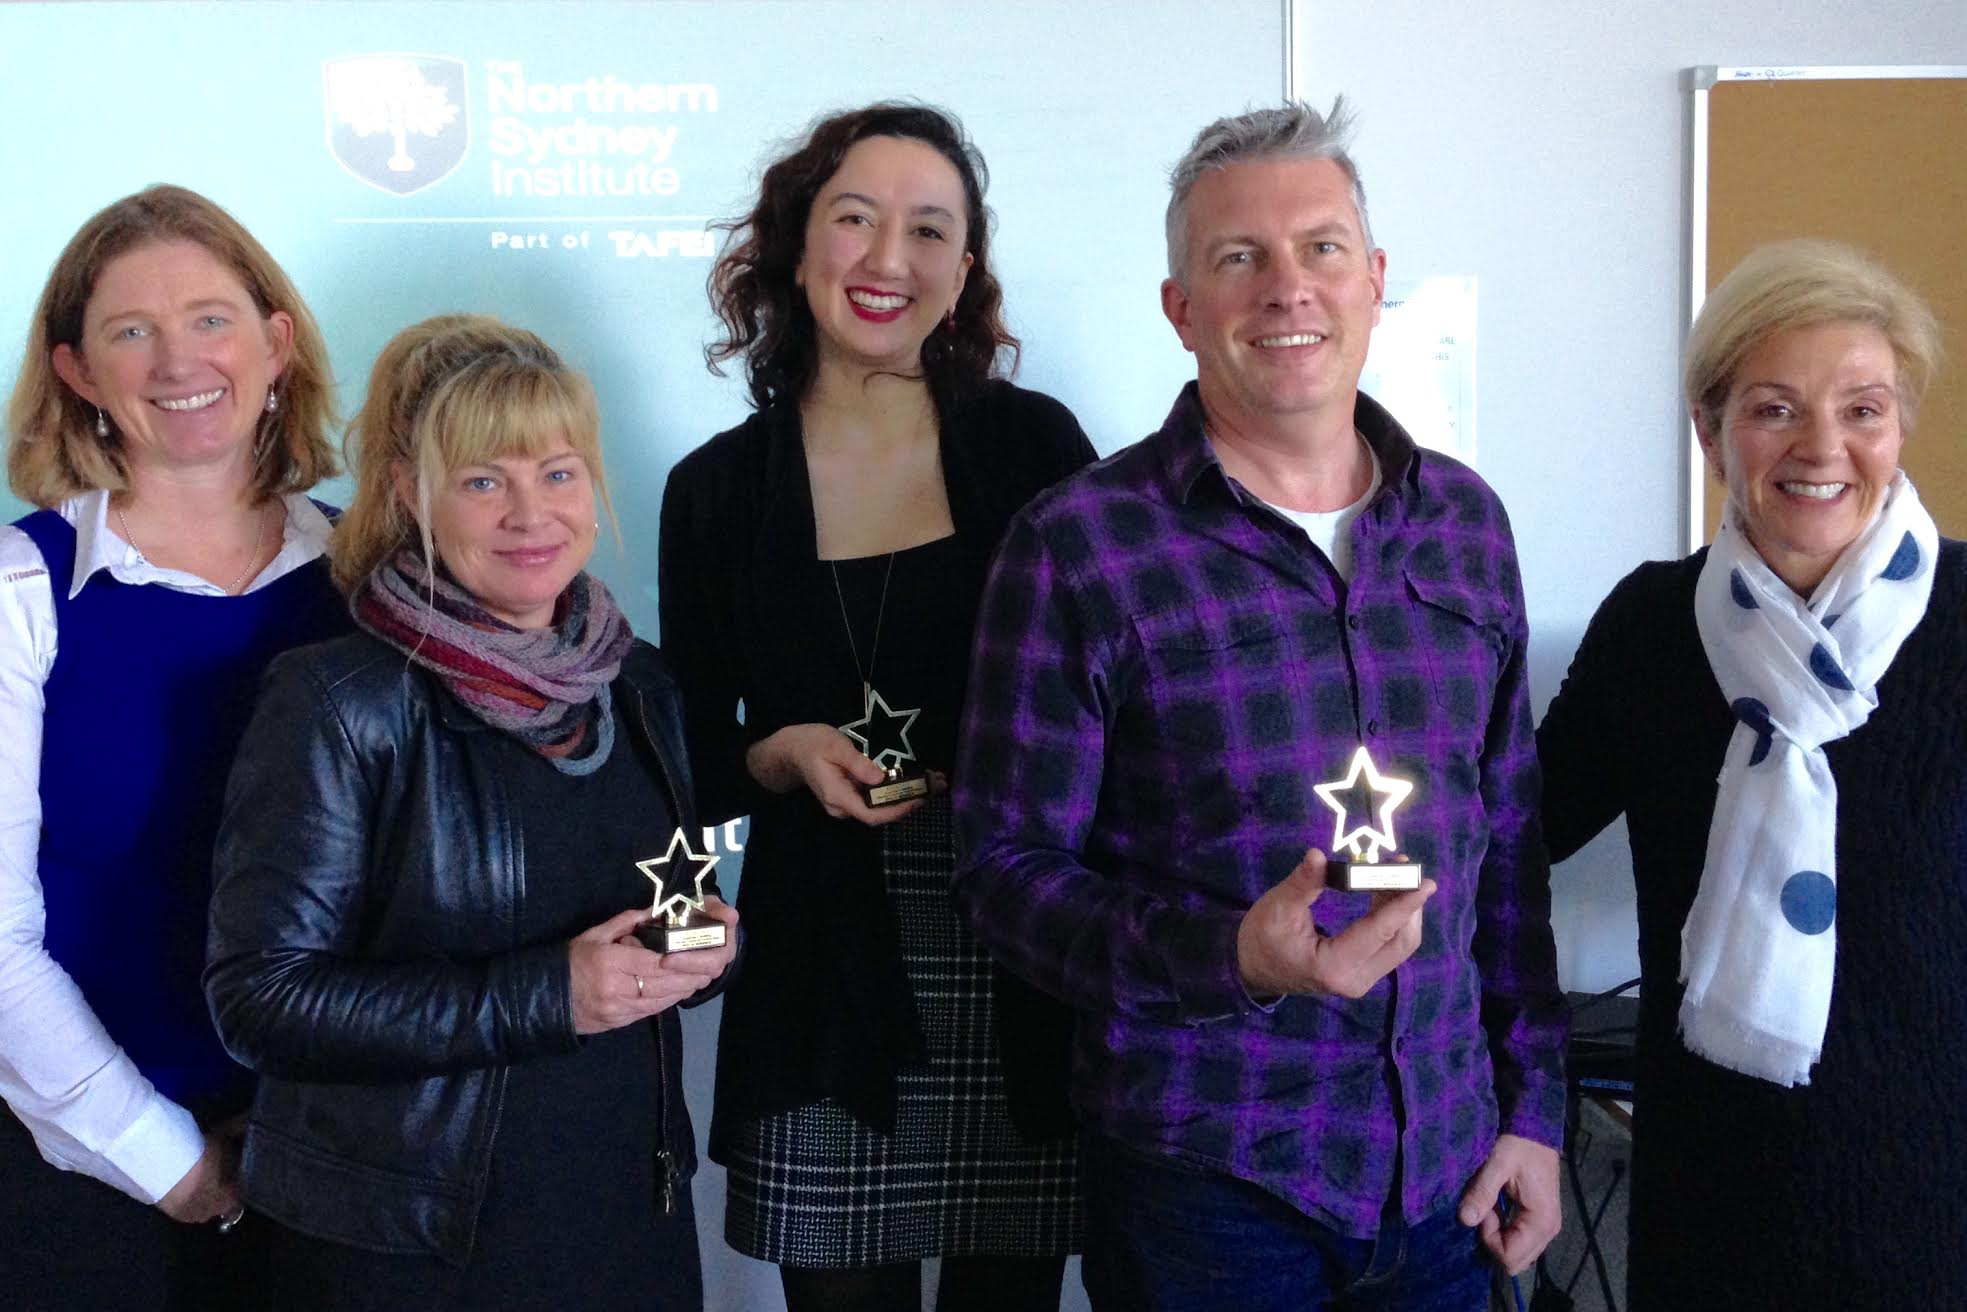 The winners of the elevator pitch challenge with their coveted trophies!